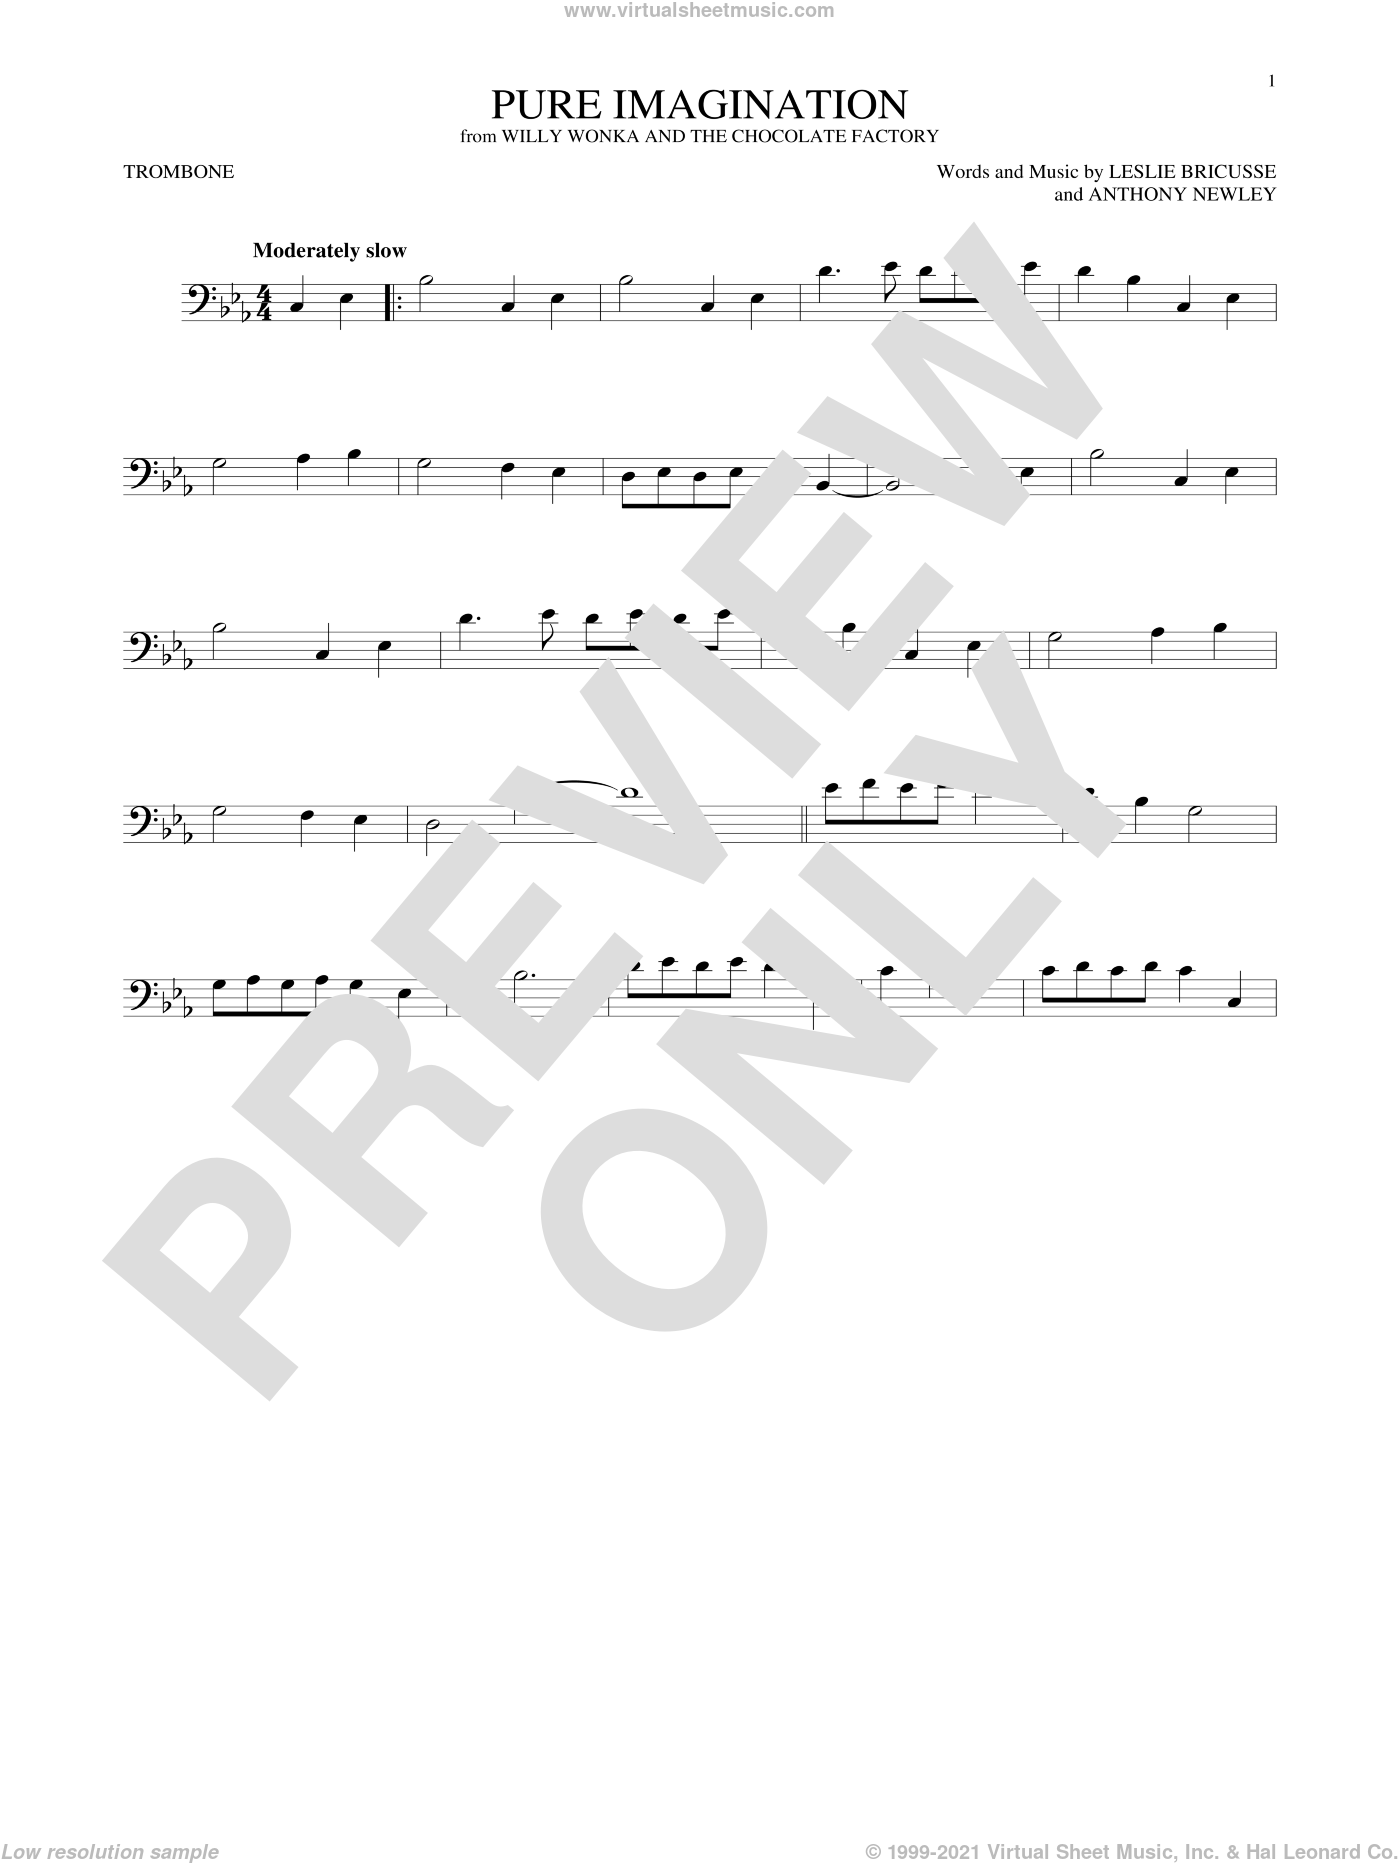 Pure Imagination sheet music for trombone solo by Leslie Bricusse and Anthony Newley, intermediate skill level